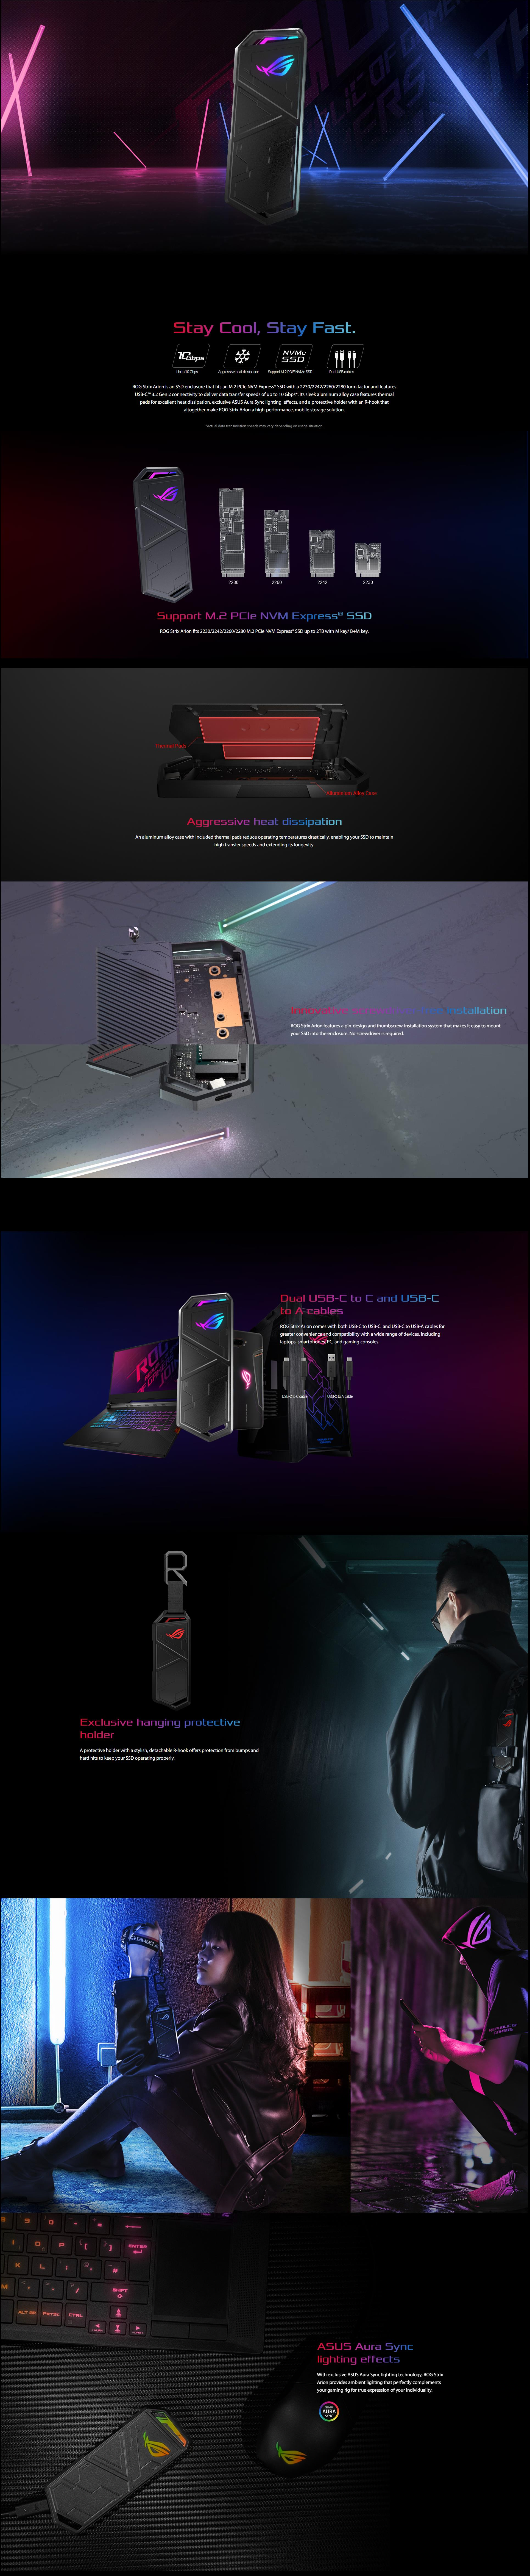 A large marketing image providing additional information about the product ASUS ROG Strix Arion USB-C NVMe M.2 Enclosure - Additional alt info not provided